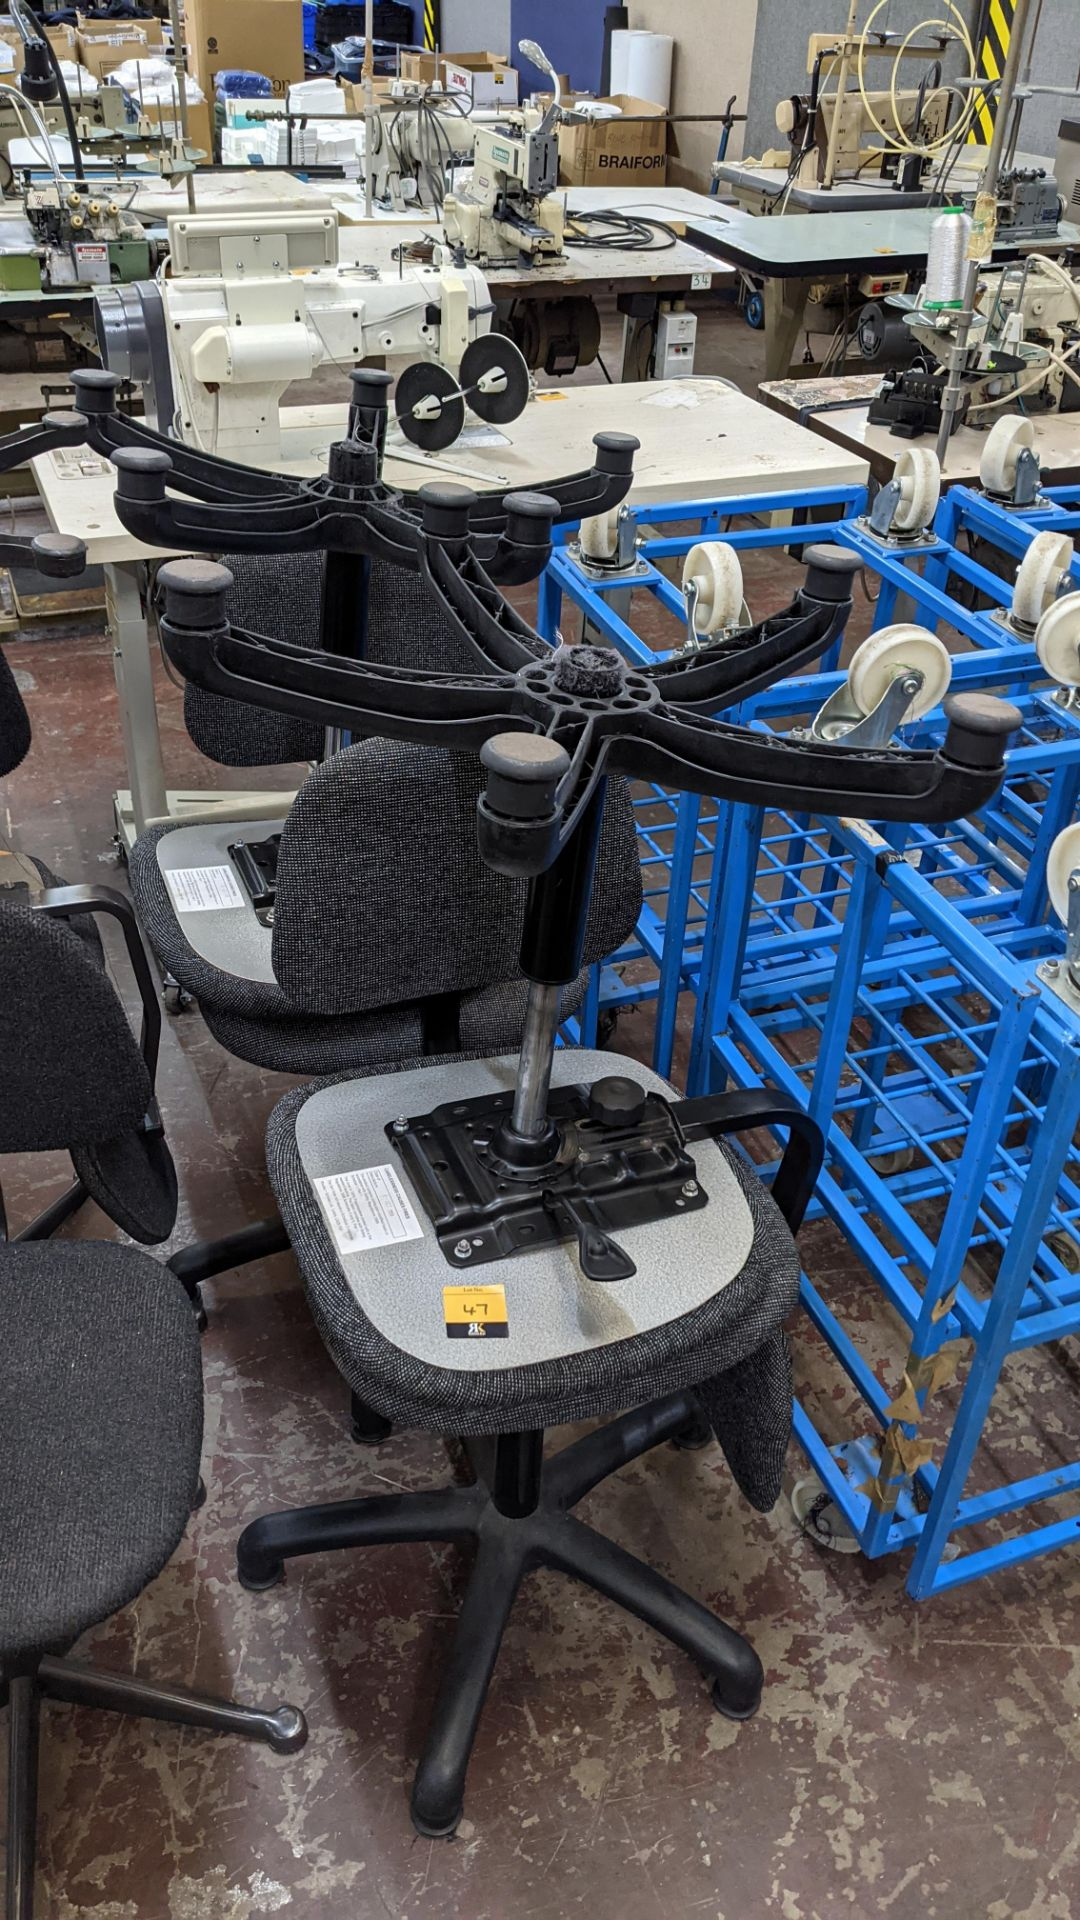 4 off matching machinists chairs - Image 2 of 7